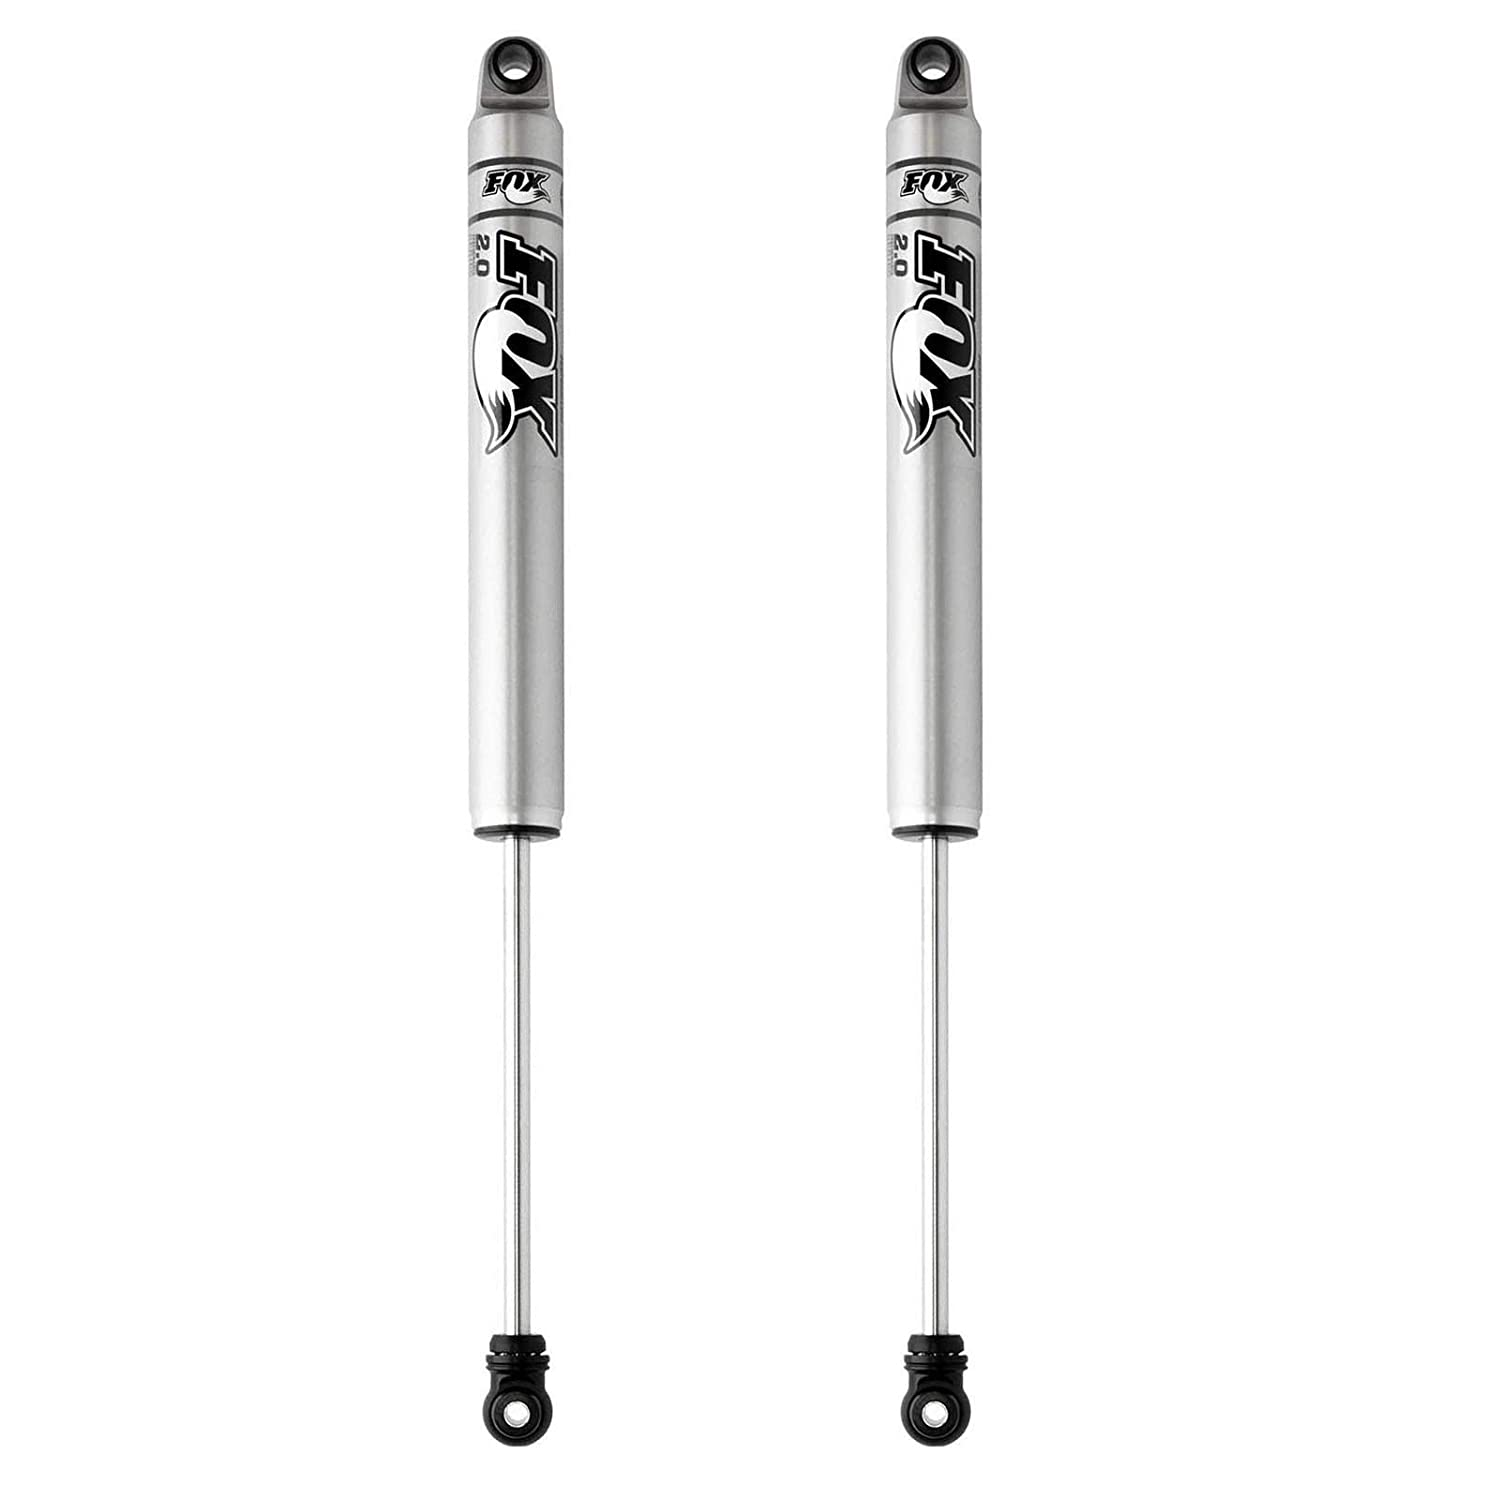 Fox 2.0 Performance Shock Rear Pair compatible with 2006-2016 Dodge Ram 1500